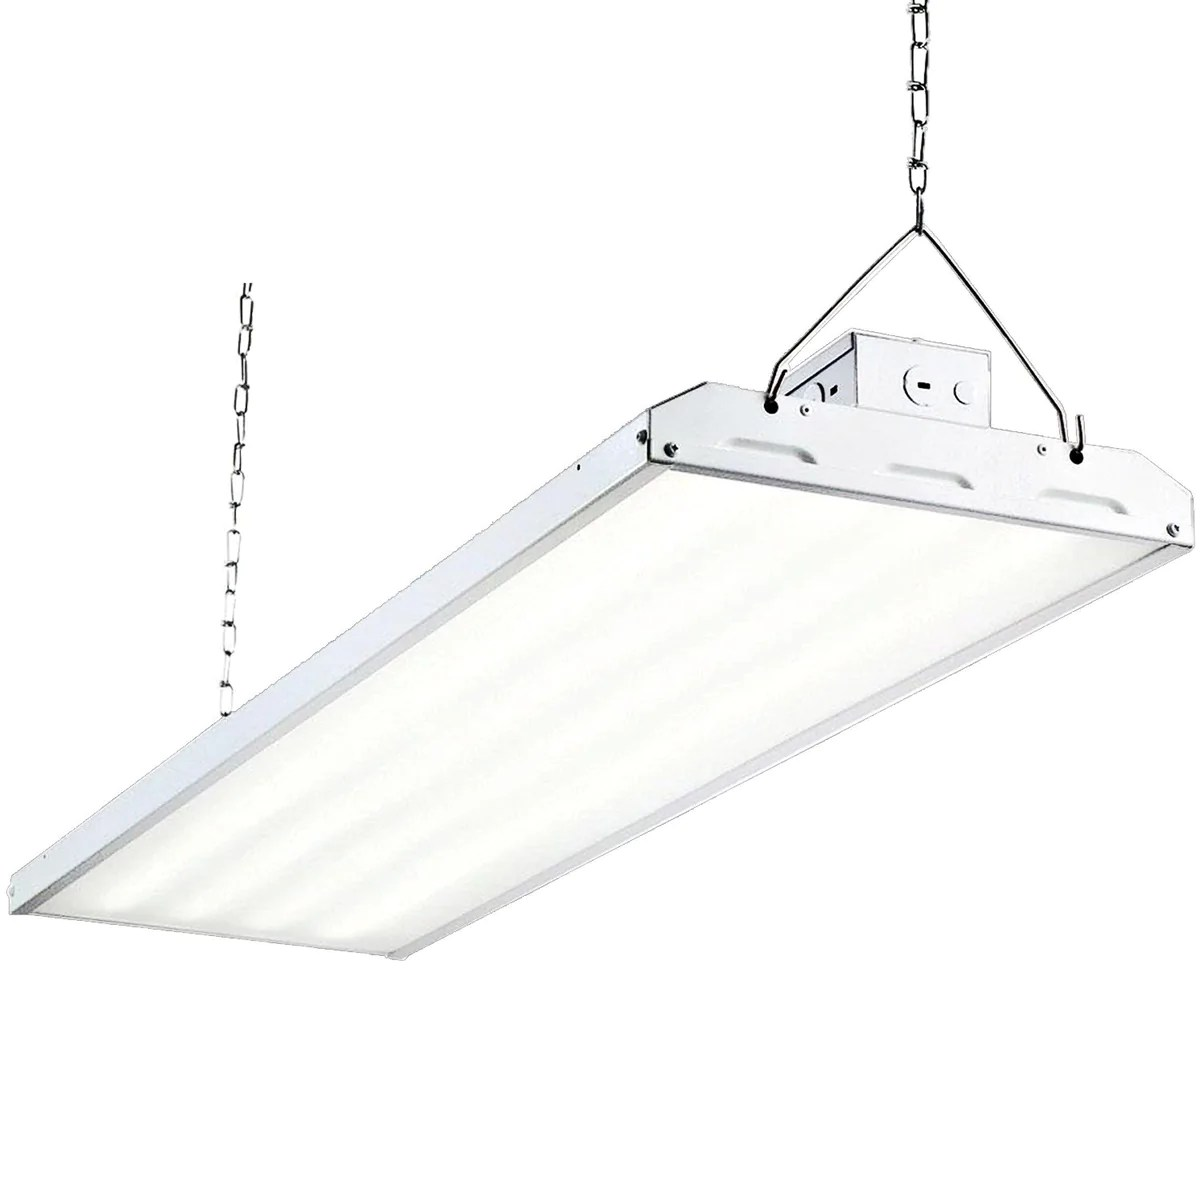 hight resolution of 4ft 4 bulb t5 fixture with sensor wiring diagram